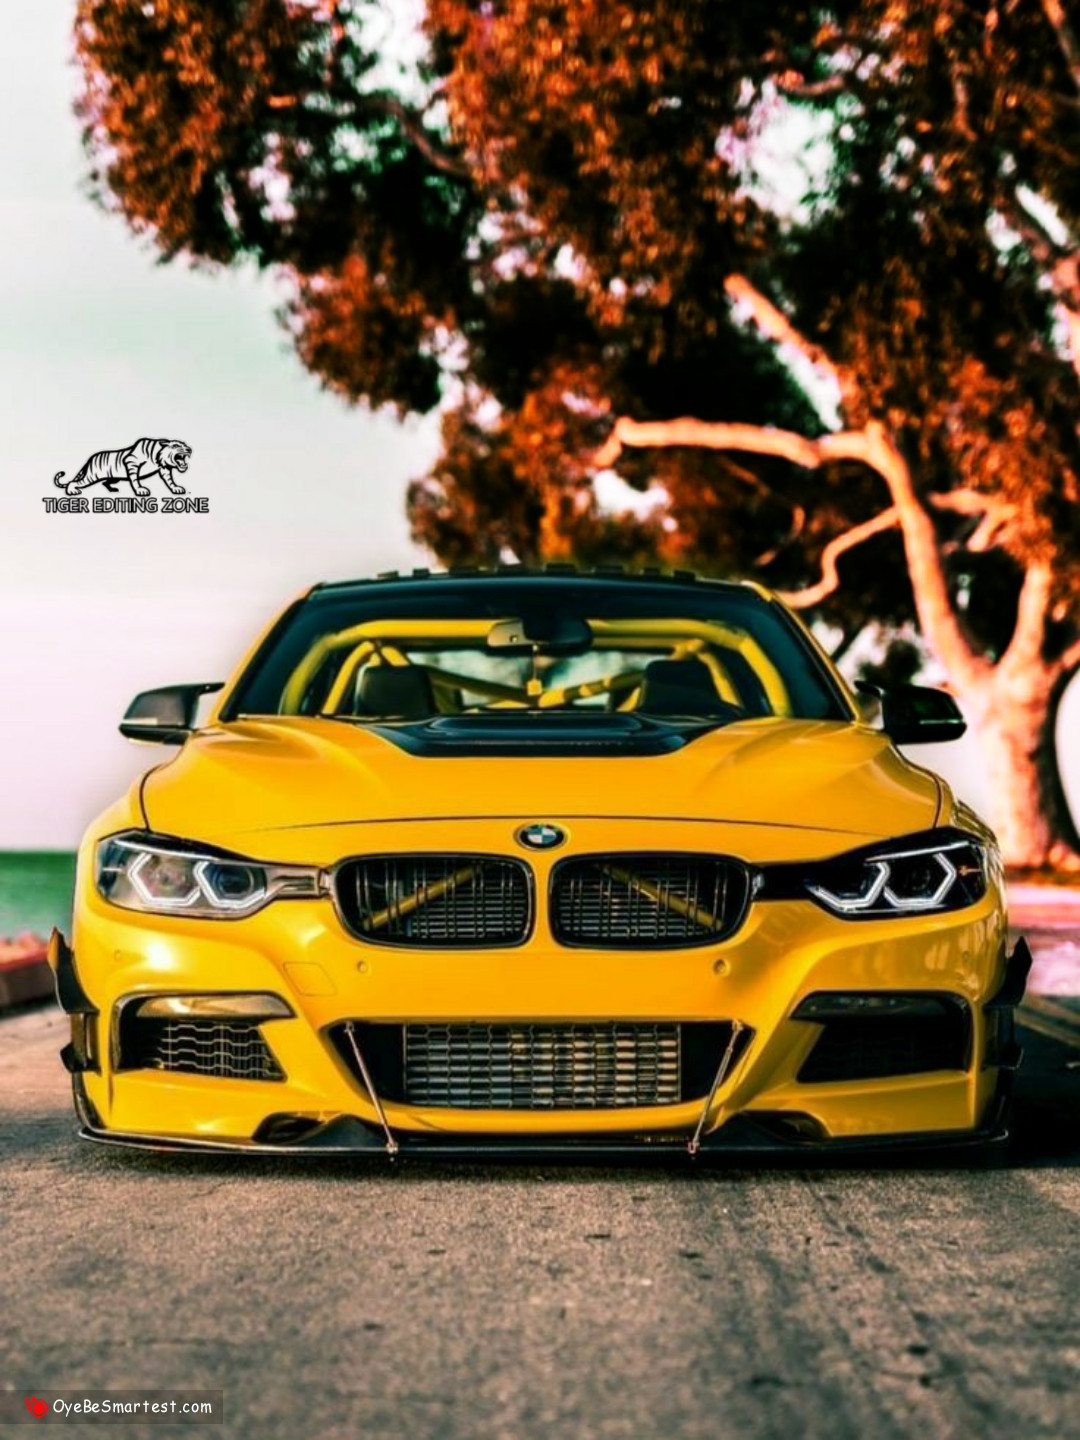 Yellow Colour Bmw Car Cb Picsart Editing Background Full Hd Image Free Dowwnload